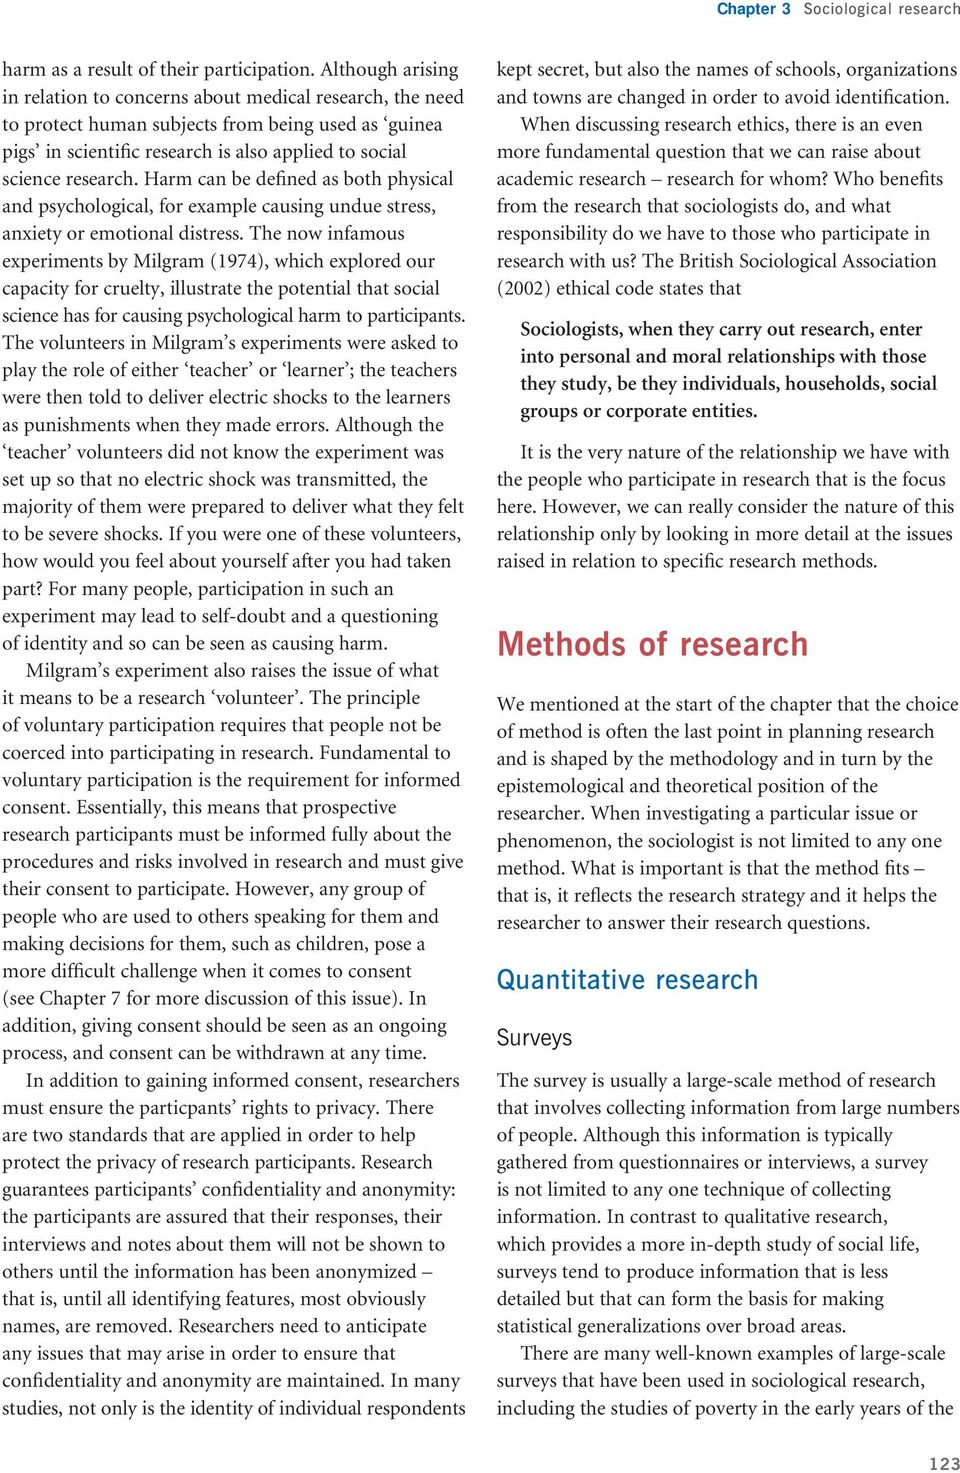 Chapter 3  Sociological research  Key issues  Introduction